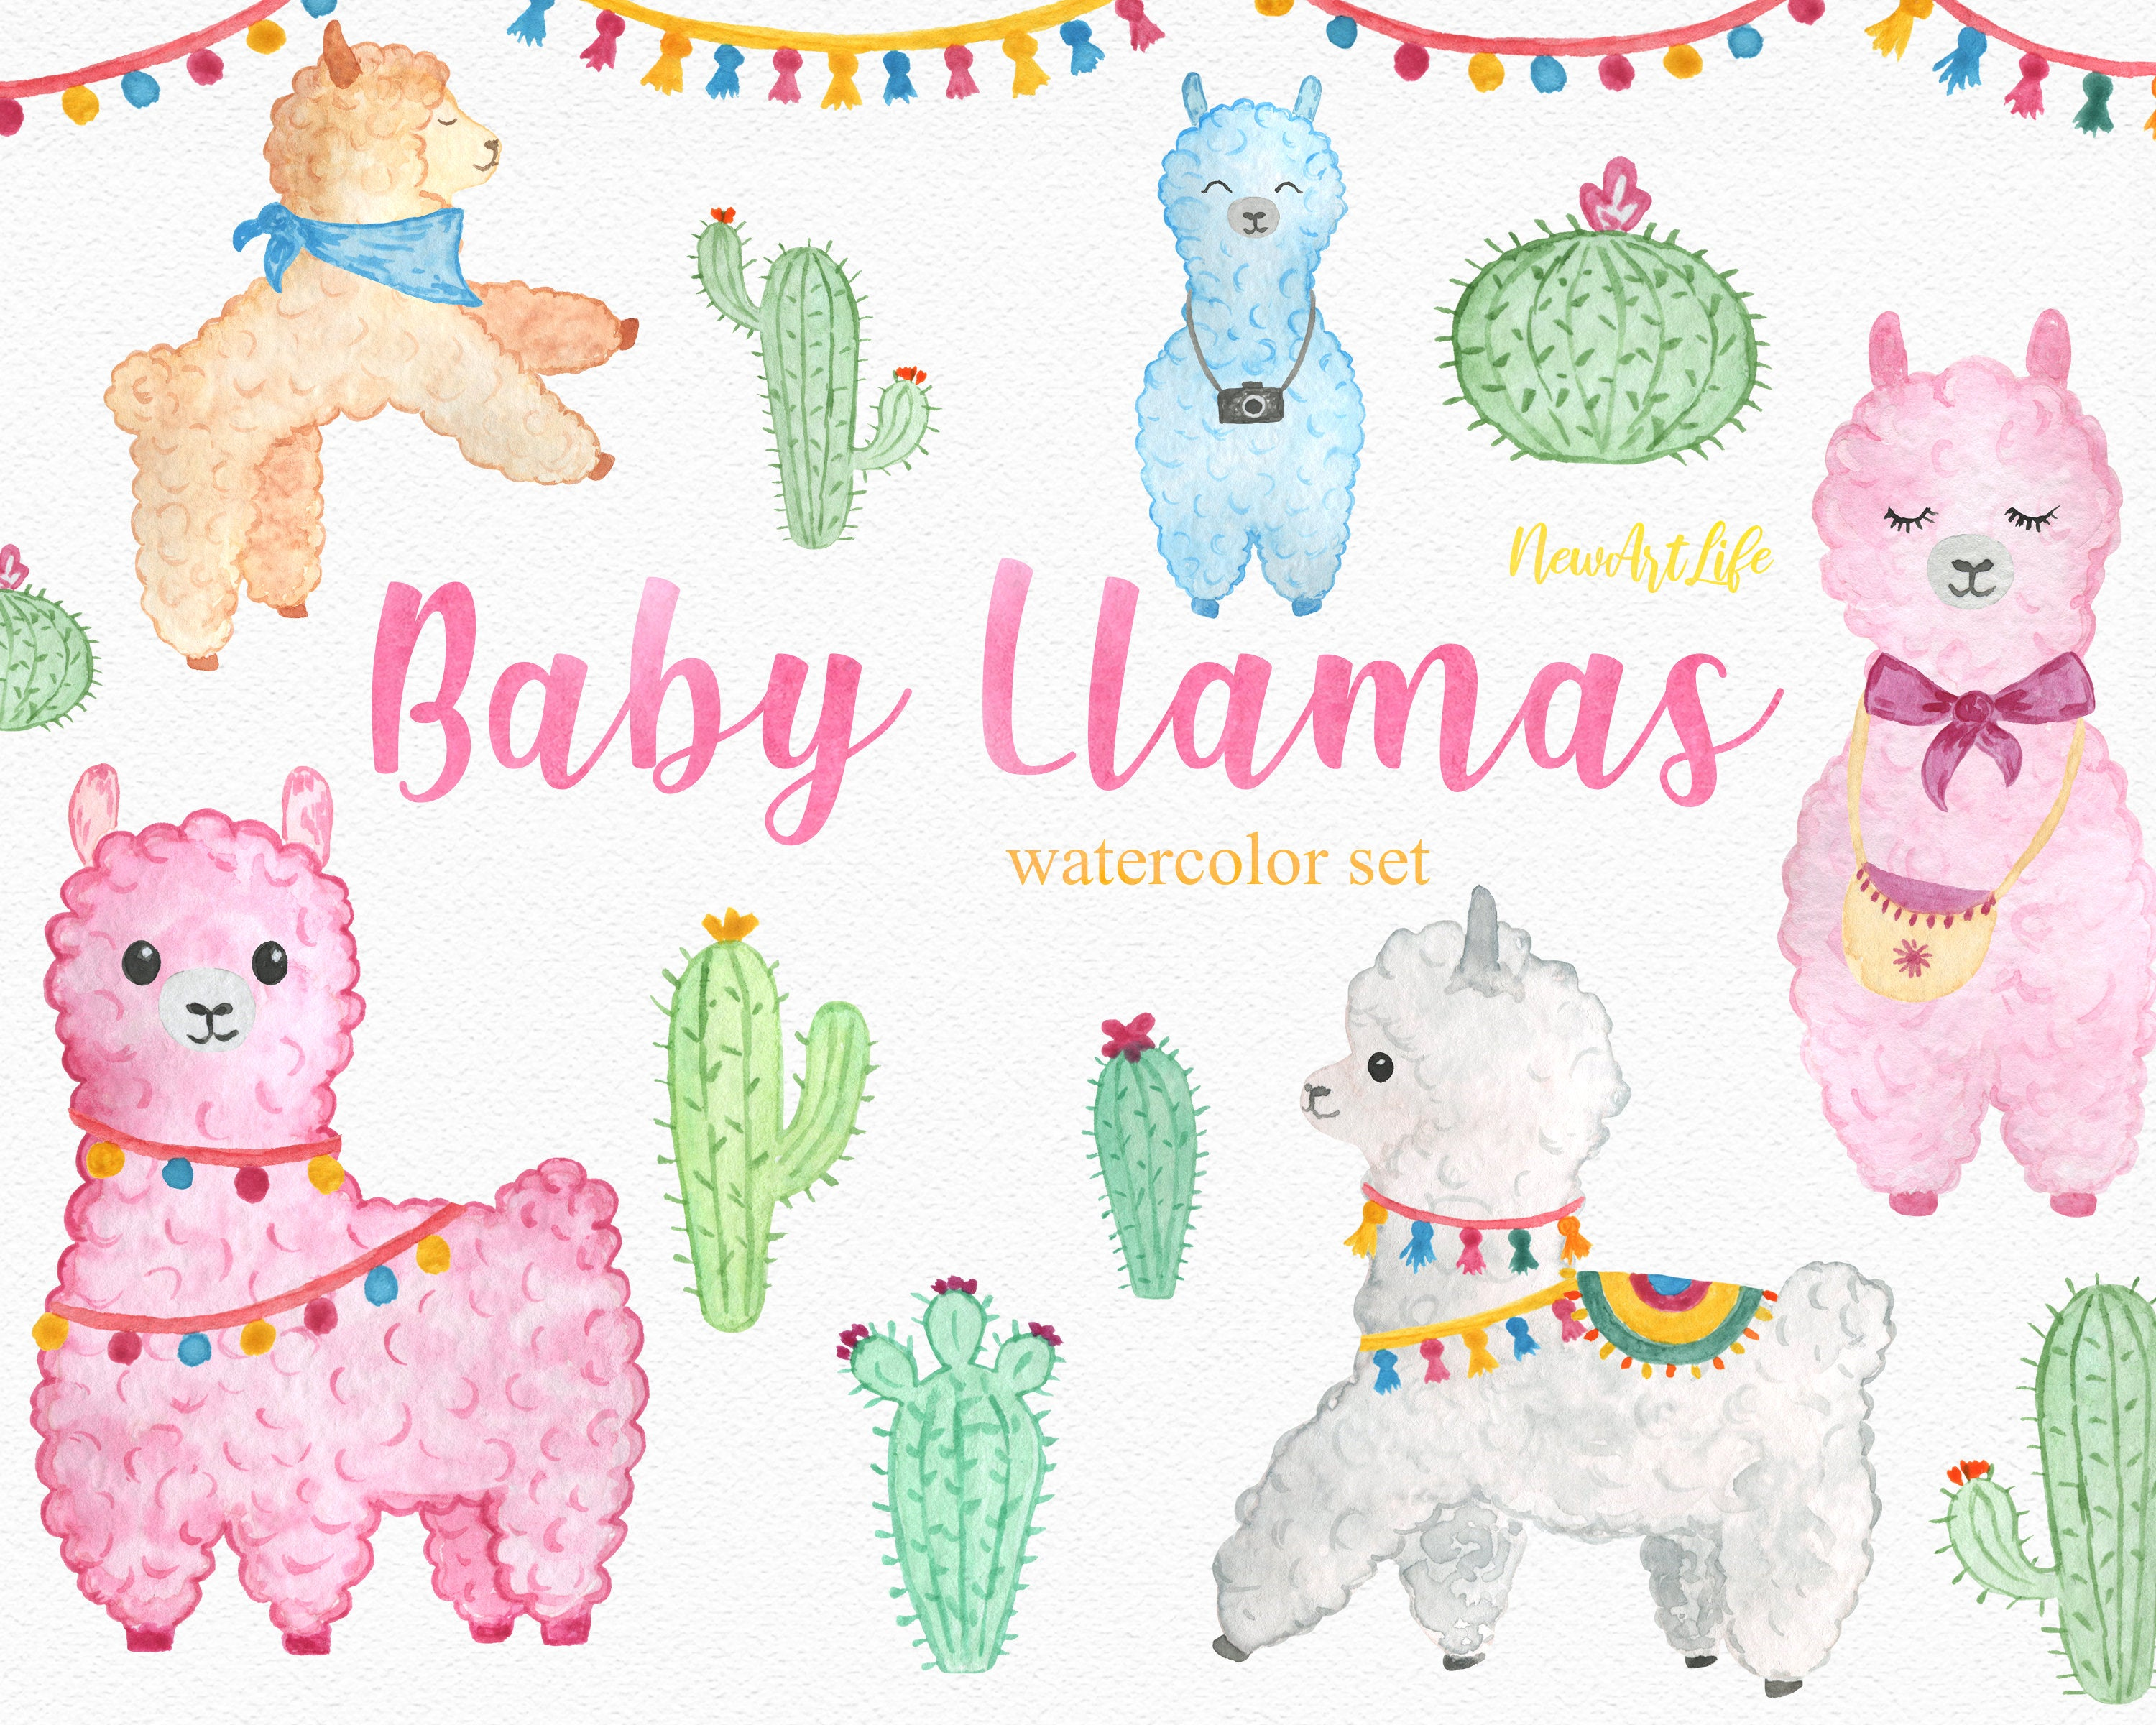 Baby Llama Watercolor Clipart Set, Instant Digital Download PNG Alpaca  Cactus Baby Shower Birthday Invitation Flowers Baby Animals Party Art.